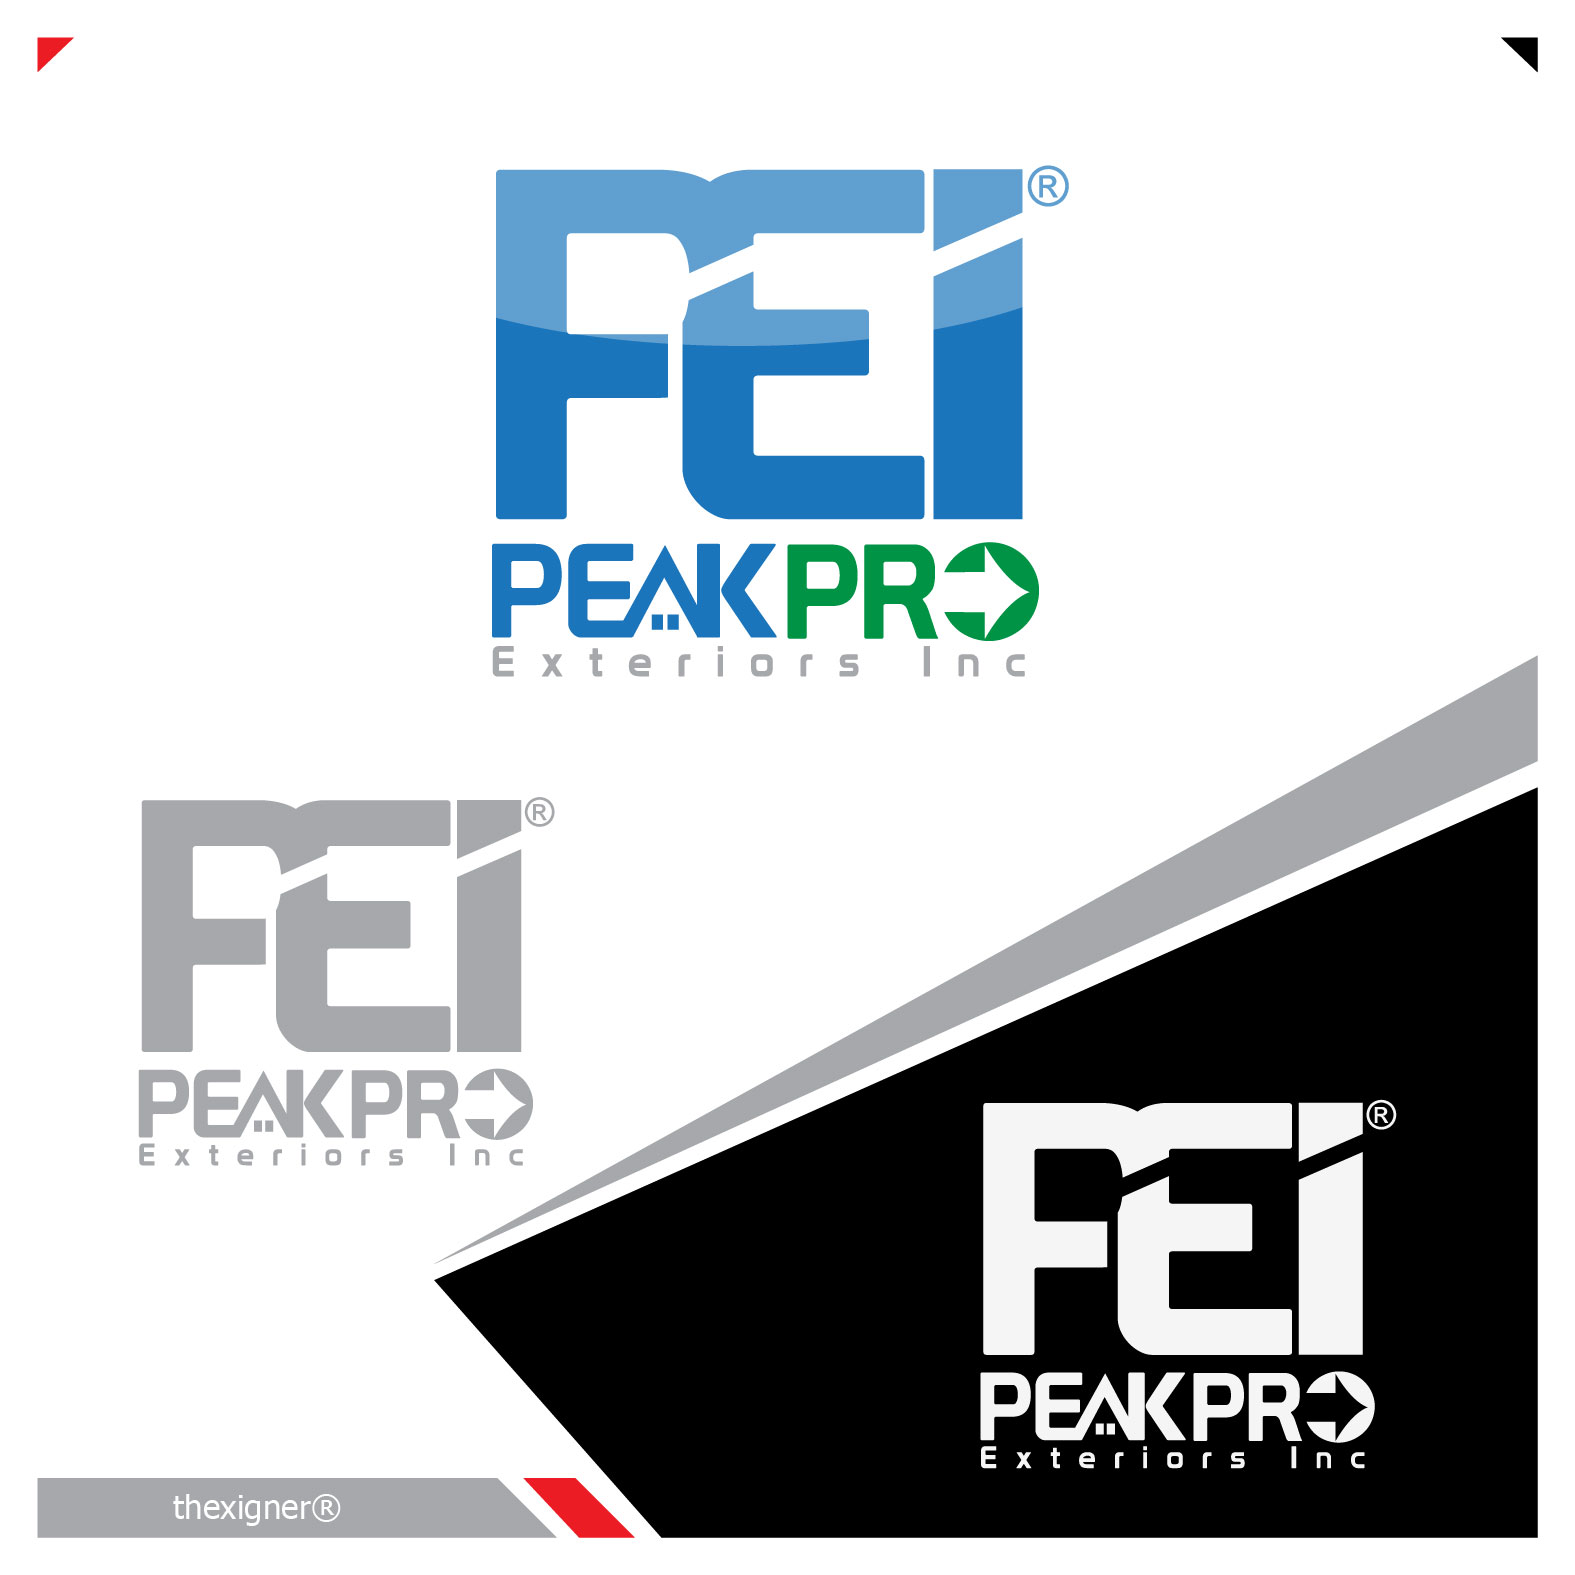 Logo Design by lagalag - Entry No. 10 in the Logo Design Contest Captivating Logo Design for Peakpro Exteriors Inc..